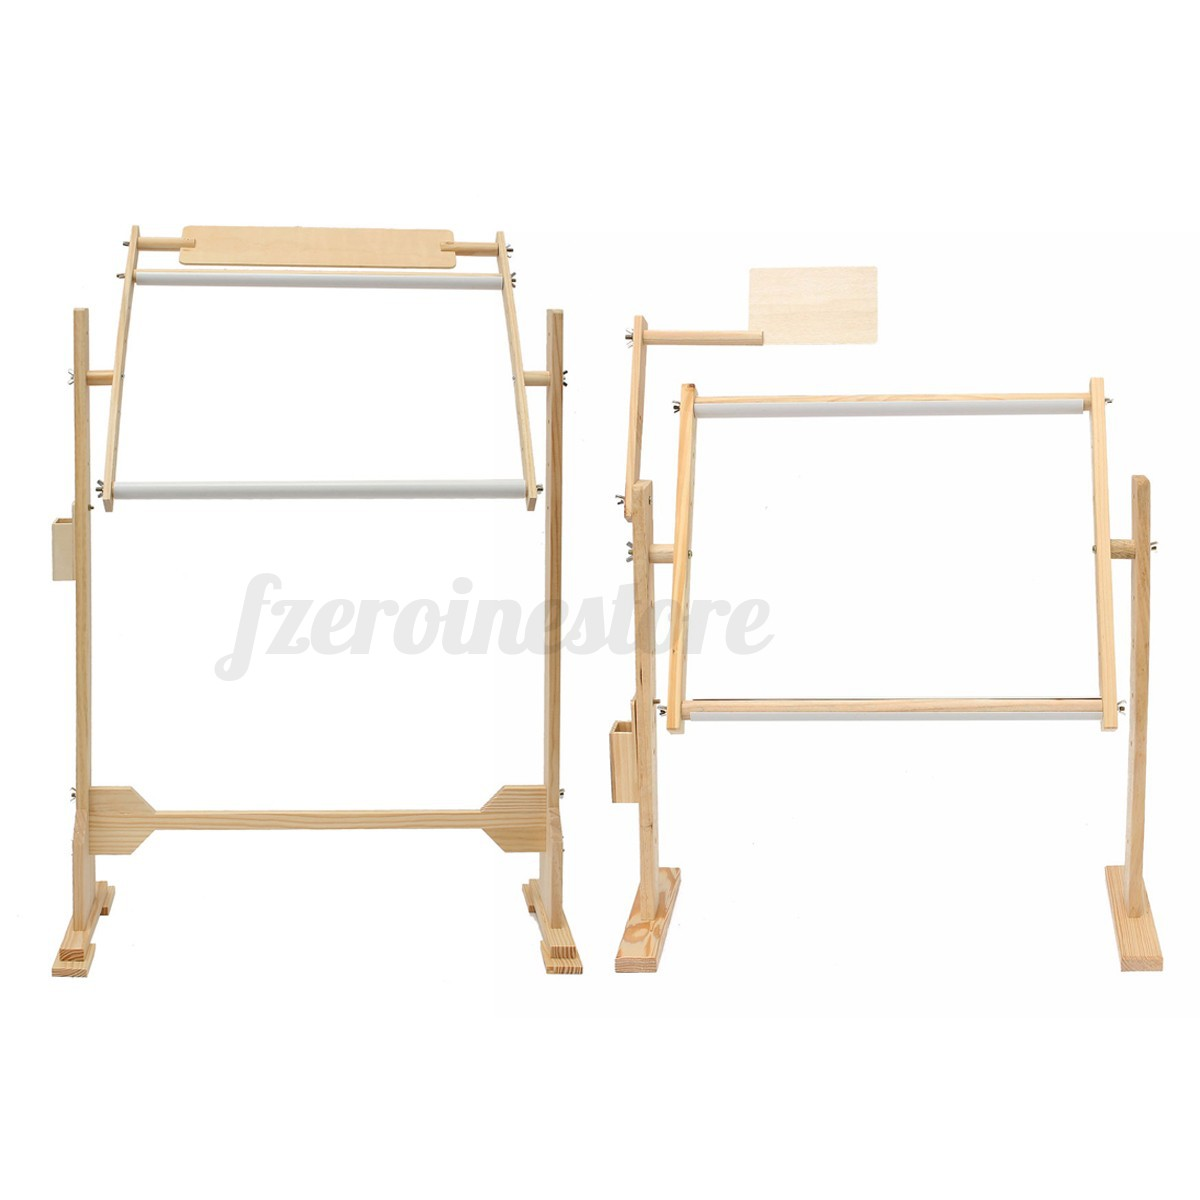 Cross stitch wooden sewing embroidery frames floor stand